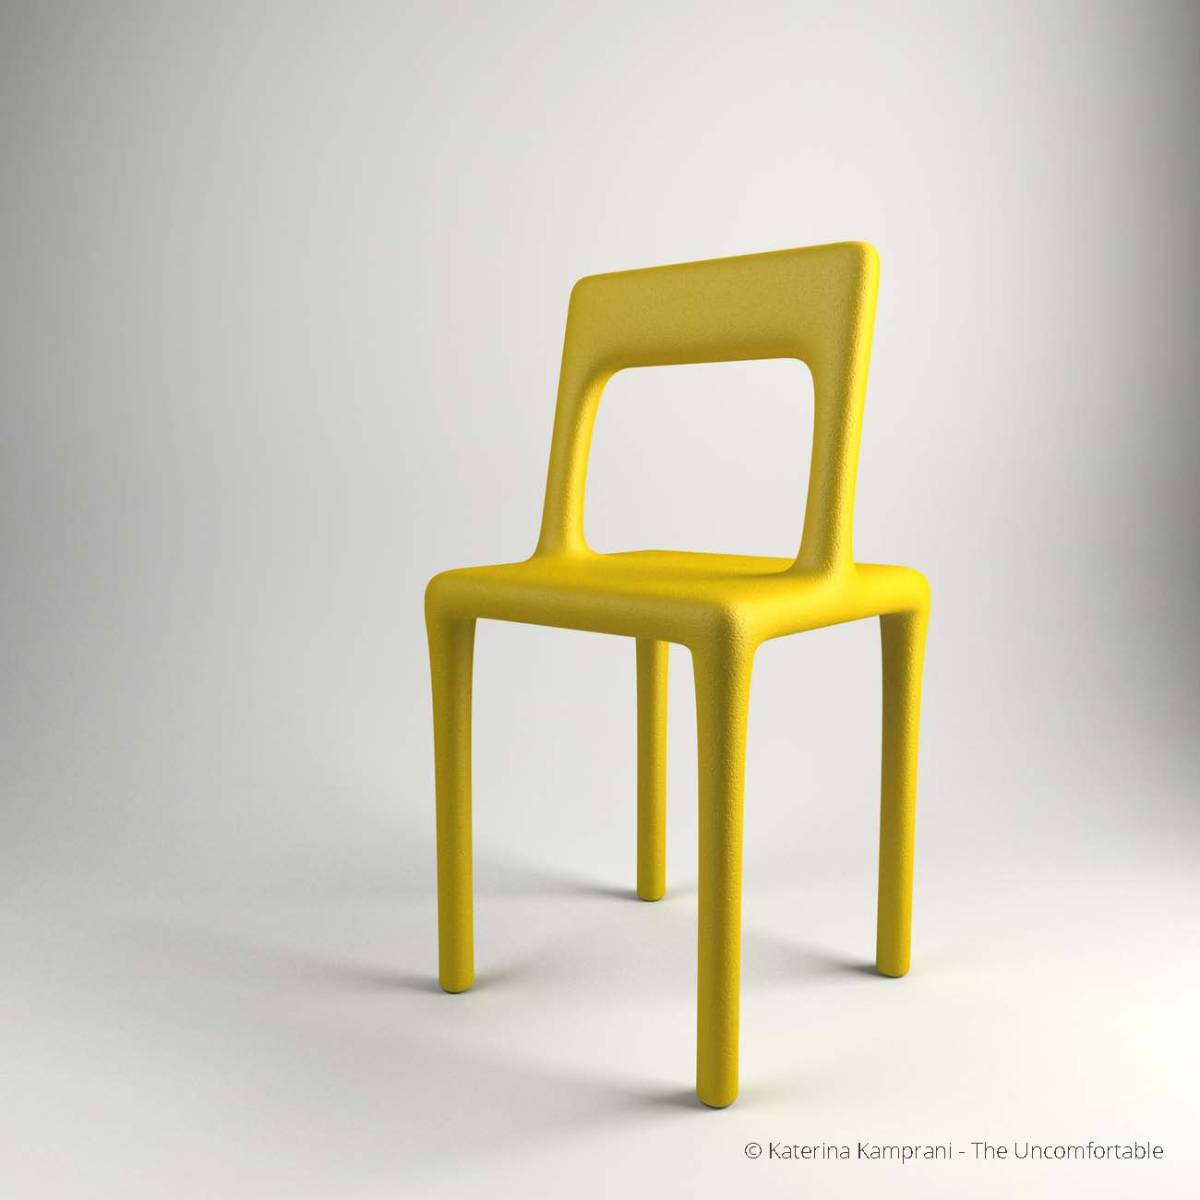 The Uncomfortable_12_chair 01